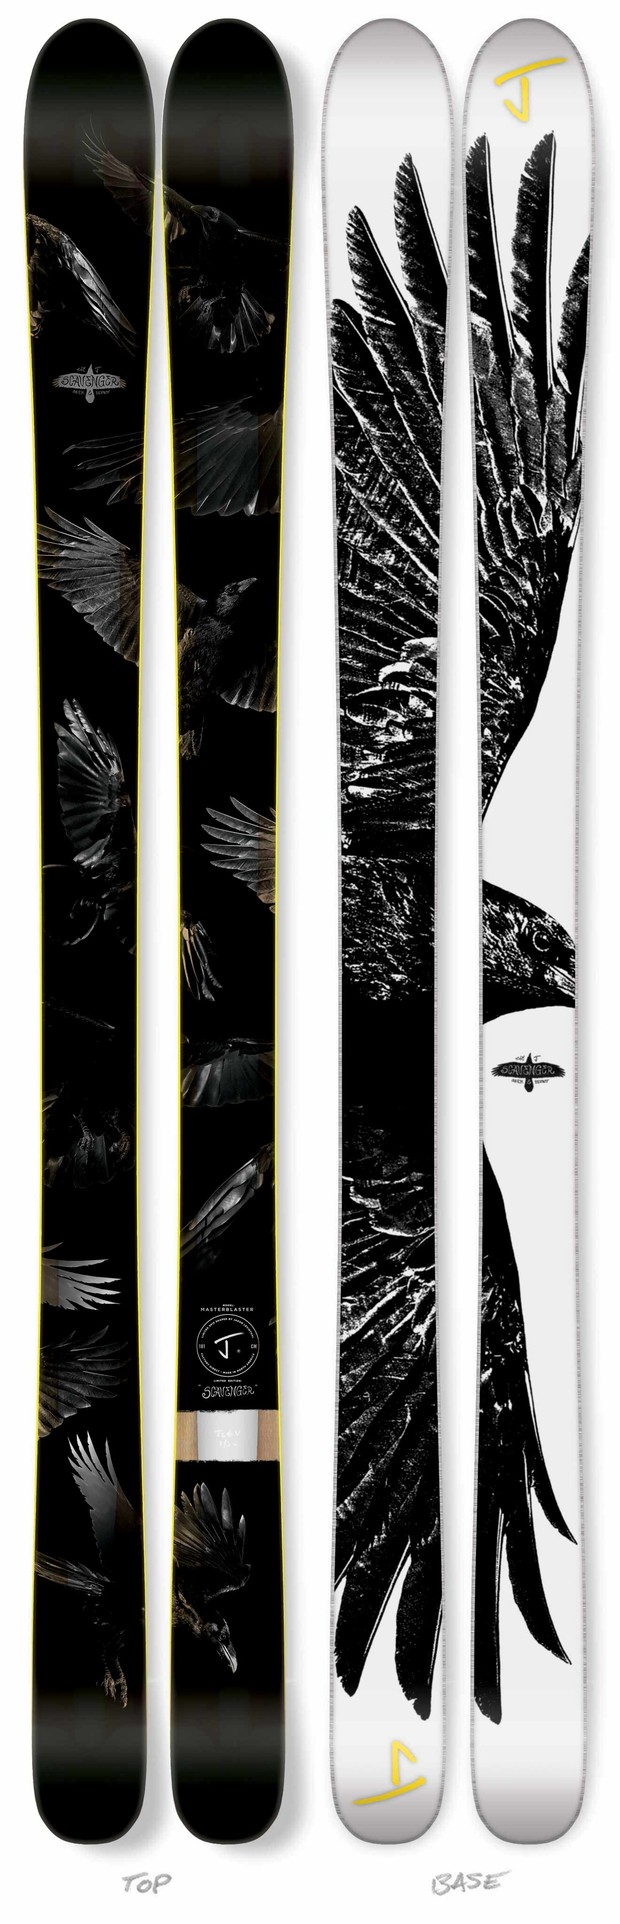 "The Masterblaster ""Scavenger"" Limited Edition Ski by J"